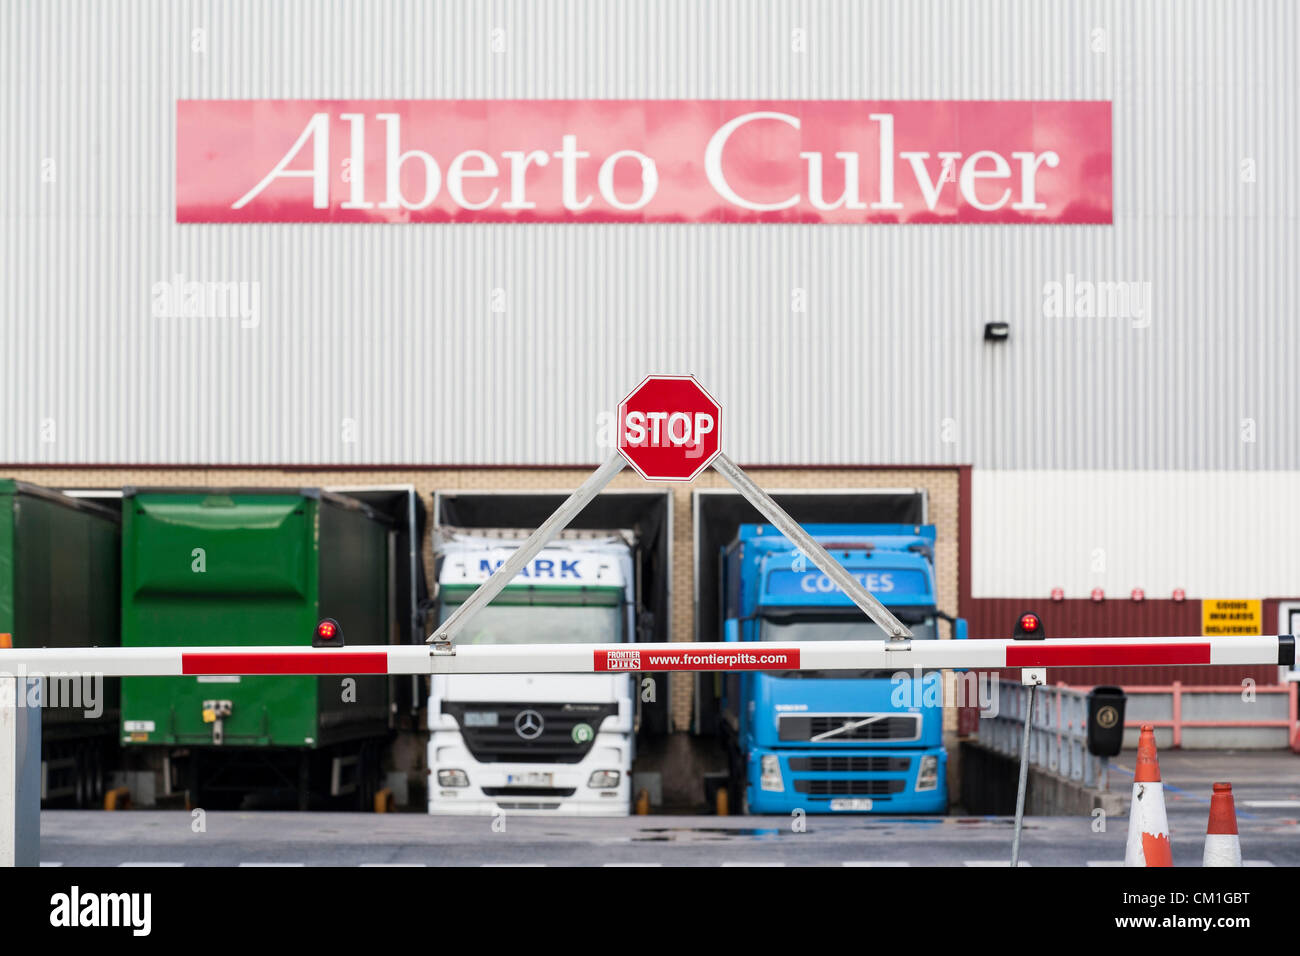 General view of the Alberto Culver factory in Swansea Enterprise park in Wales, UK on Friday 14th September, 2012. Stock Photo